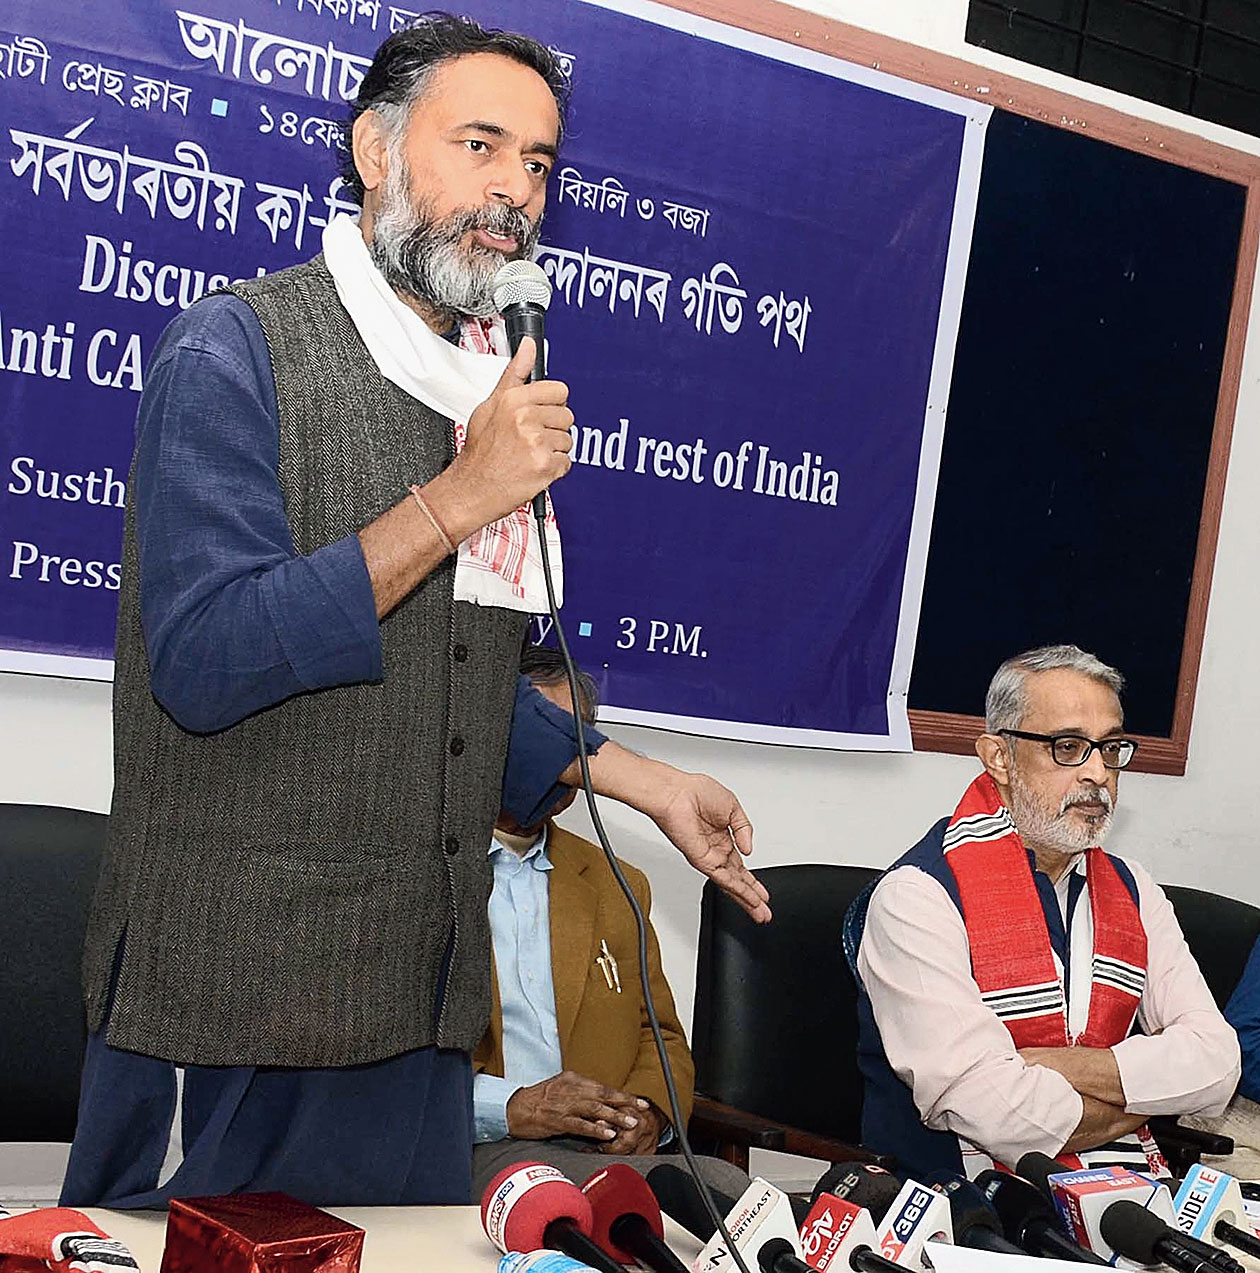 Yogendra Yadav speaks at the event in Guwahati on Friday